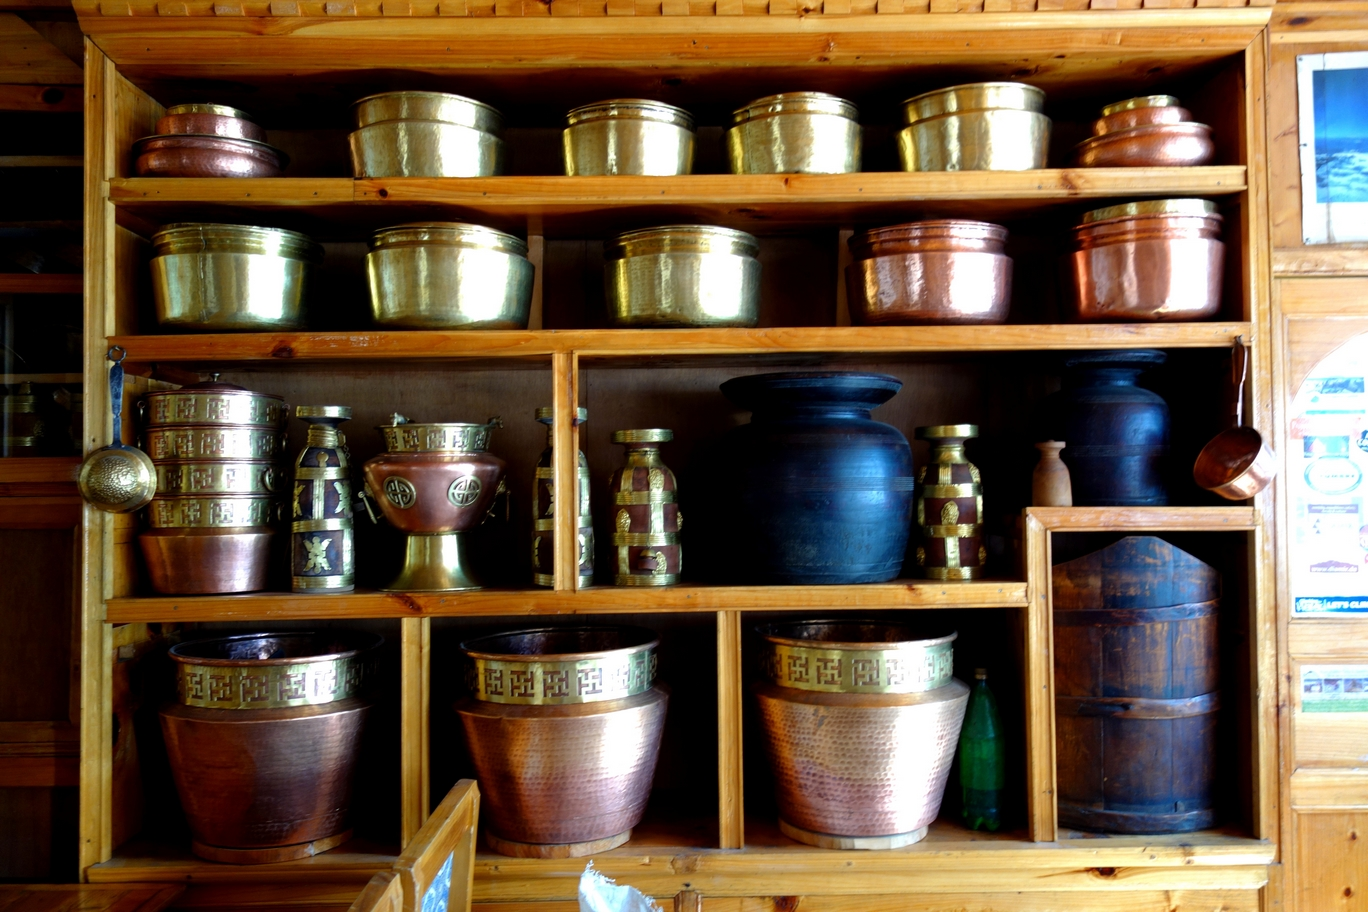 It's common in Nepal to display your kitchenwares as a statement of your family's wealth